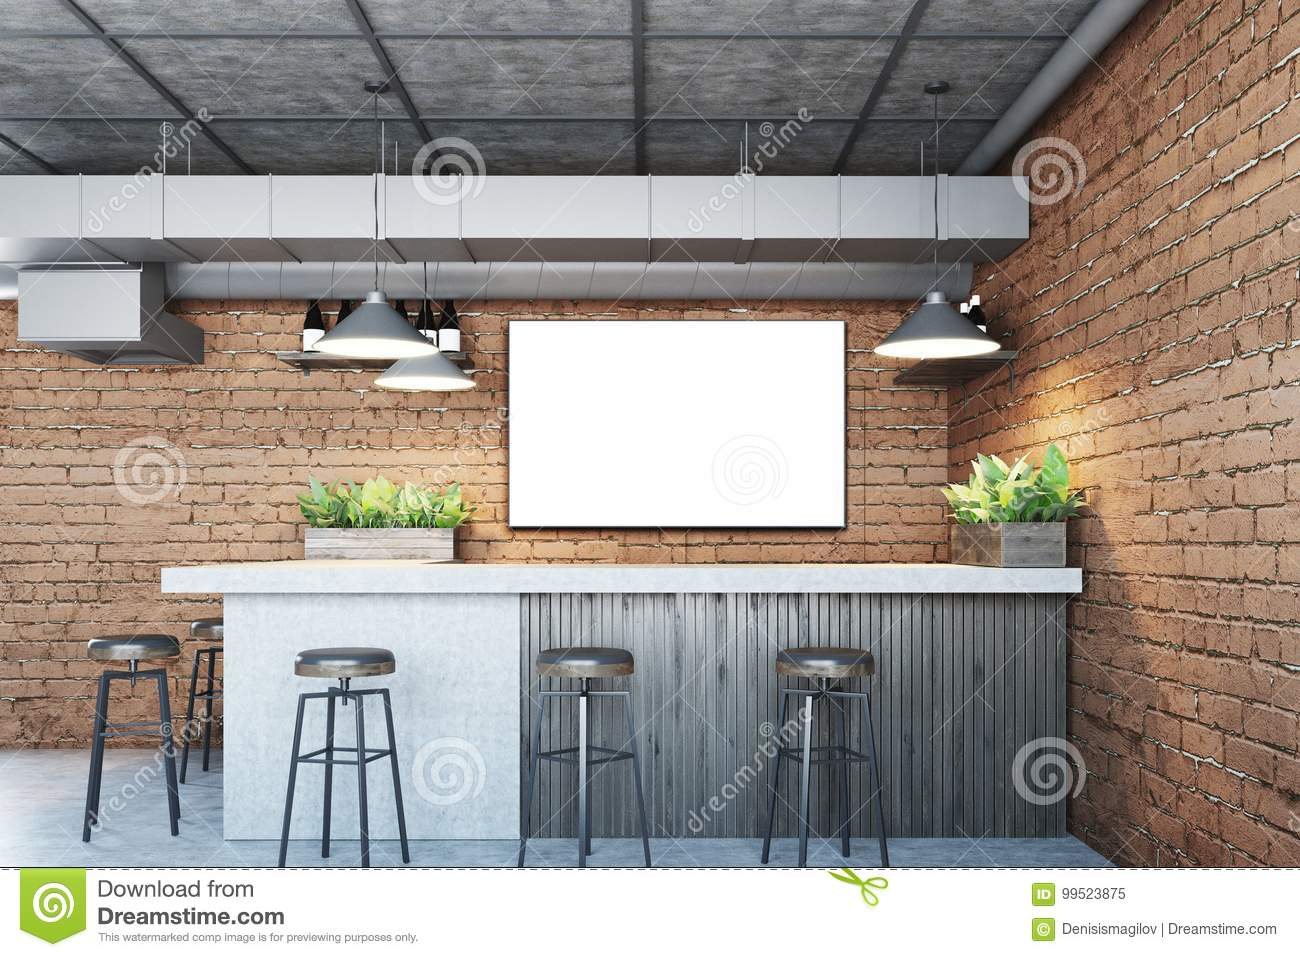 Brick bar with a poster stock illustration. Illustration of coffee ...